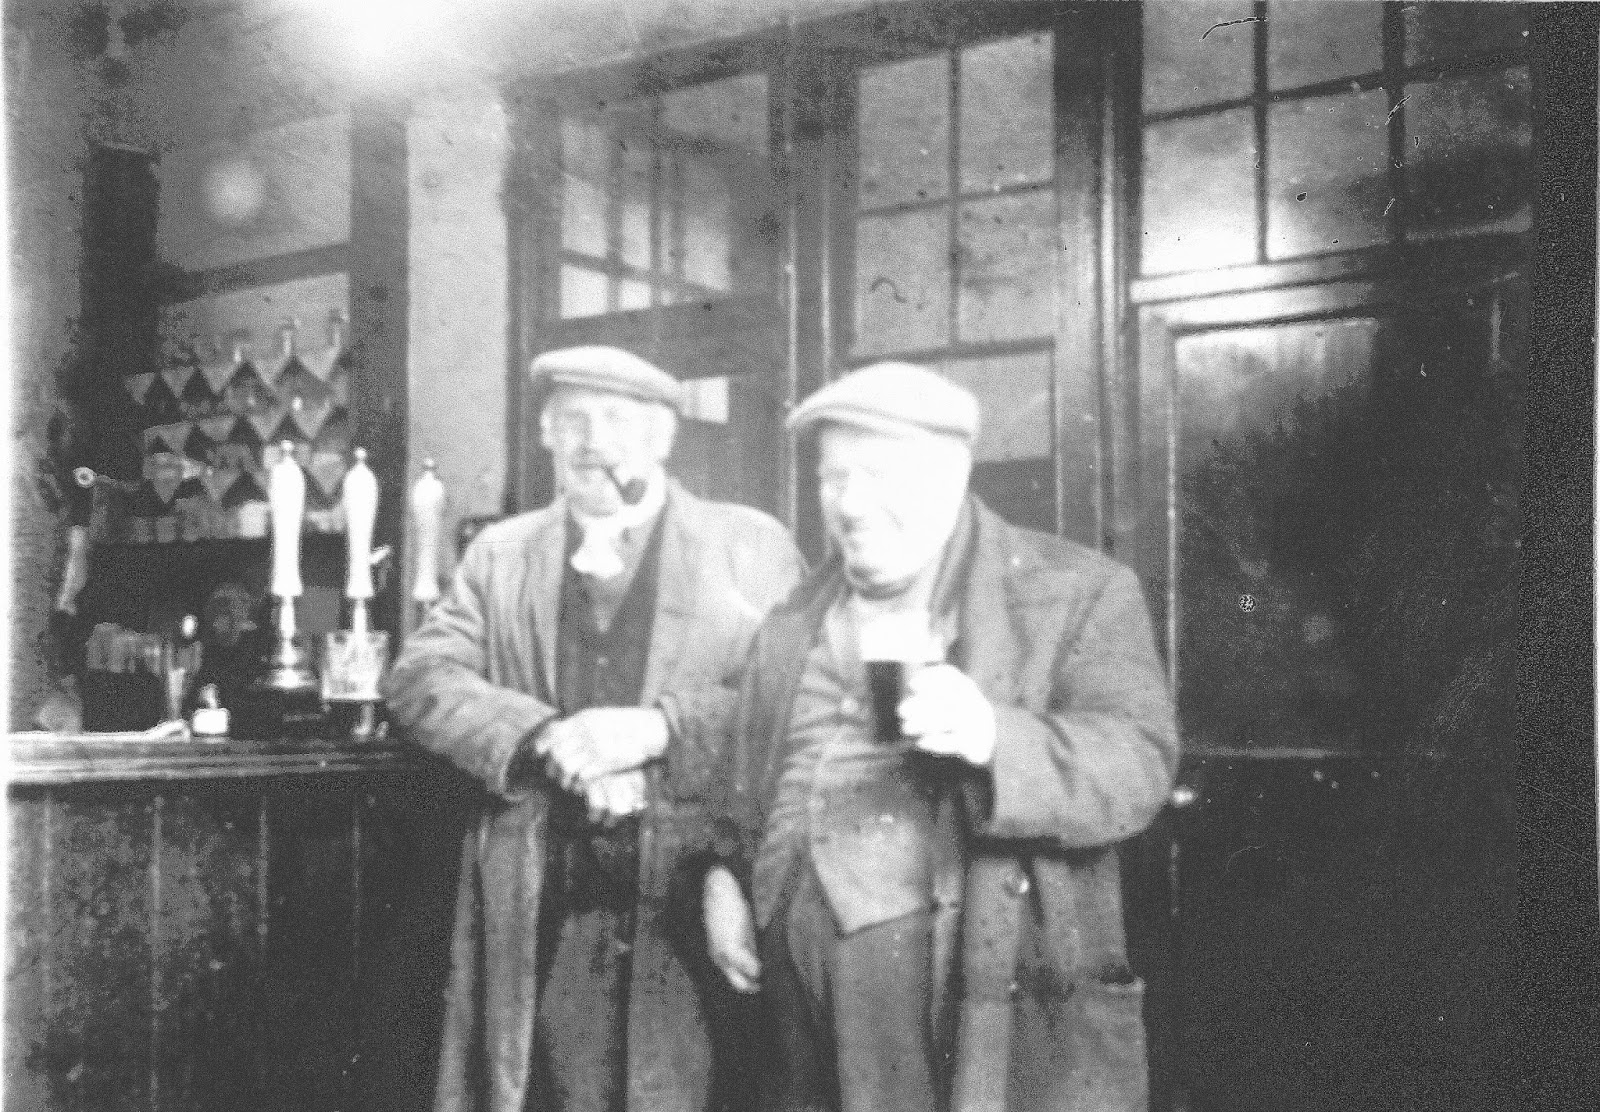 Wivenhoe heritage nothing like a pint after work for 5 clifton terrace winchester b b